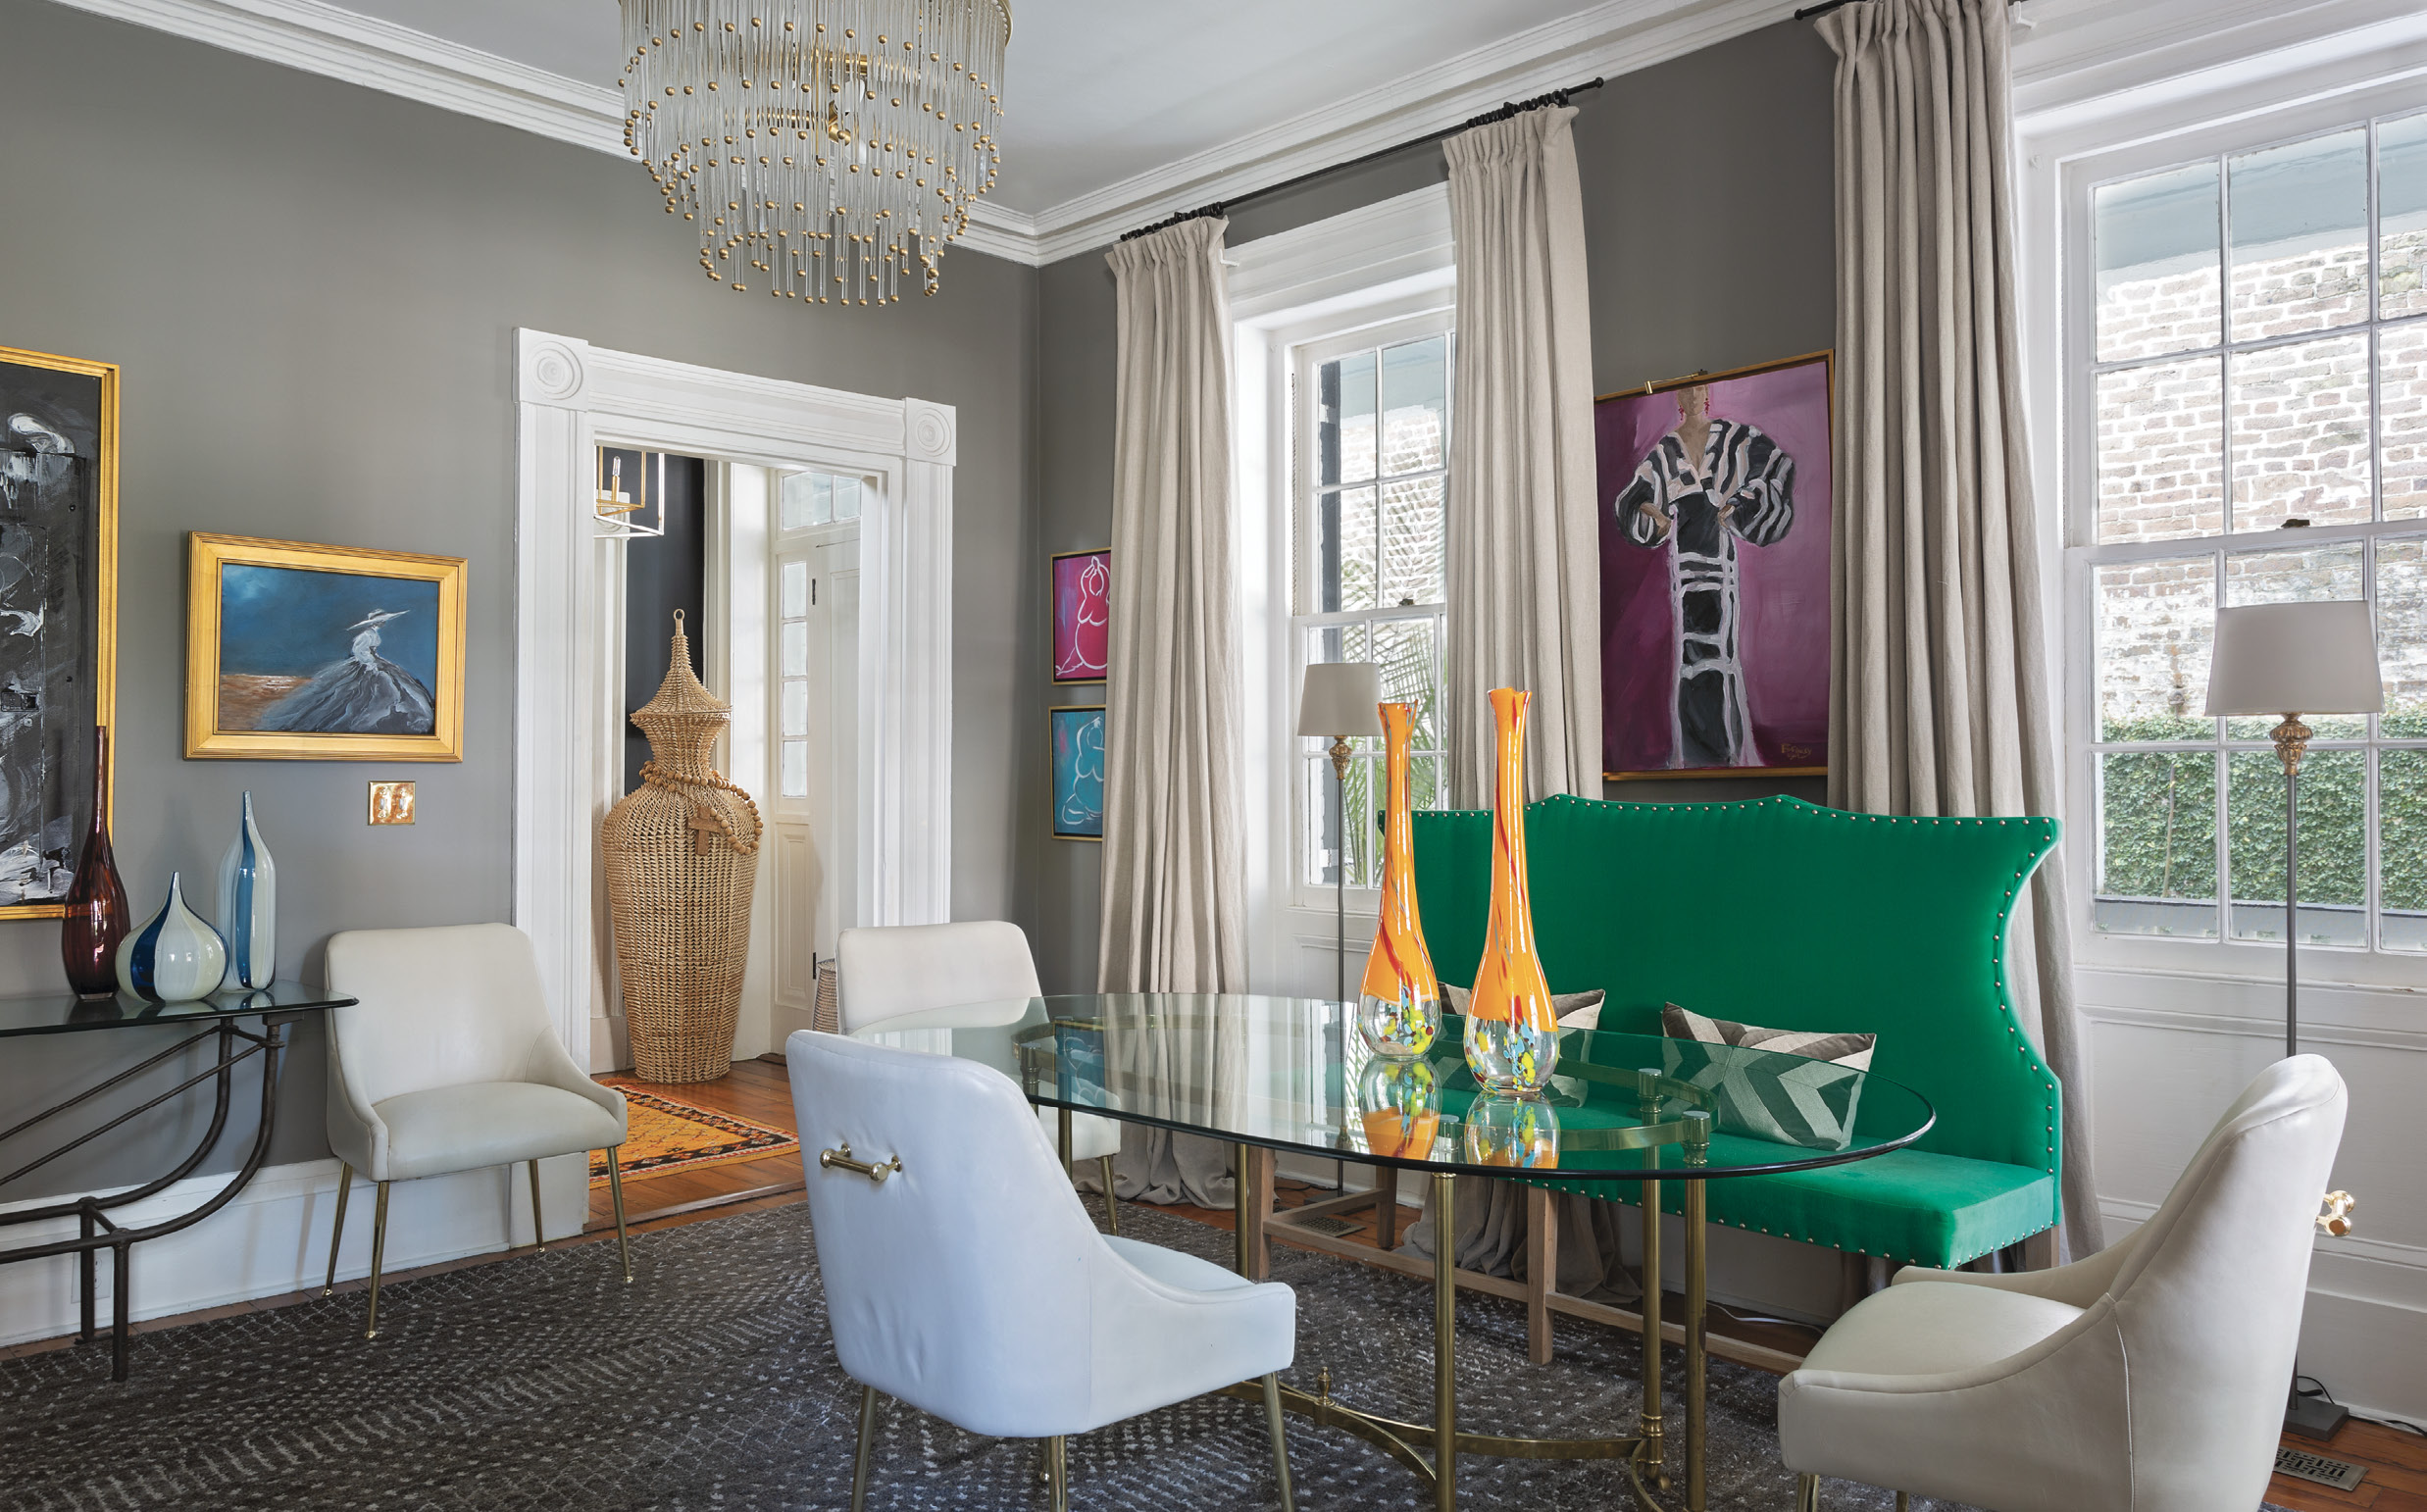 Something Old, Something New: Bold colors, eclectic art, contrasting fabrics, and a smattering of antiques turn a formal sitting room into a dynamic space. The glass dining table from Patricia Allen Antiques at Fritz Porter dispenses with formality, thanks to white leather chairs from Anthropologie and a green velvet settee from South of Market downtown.